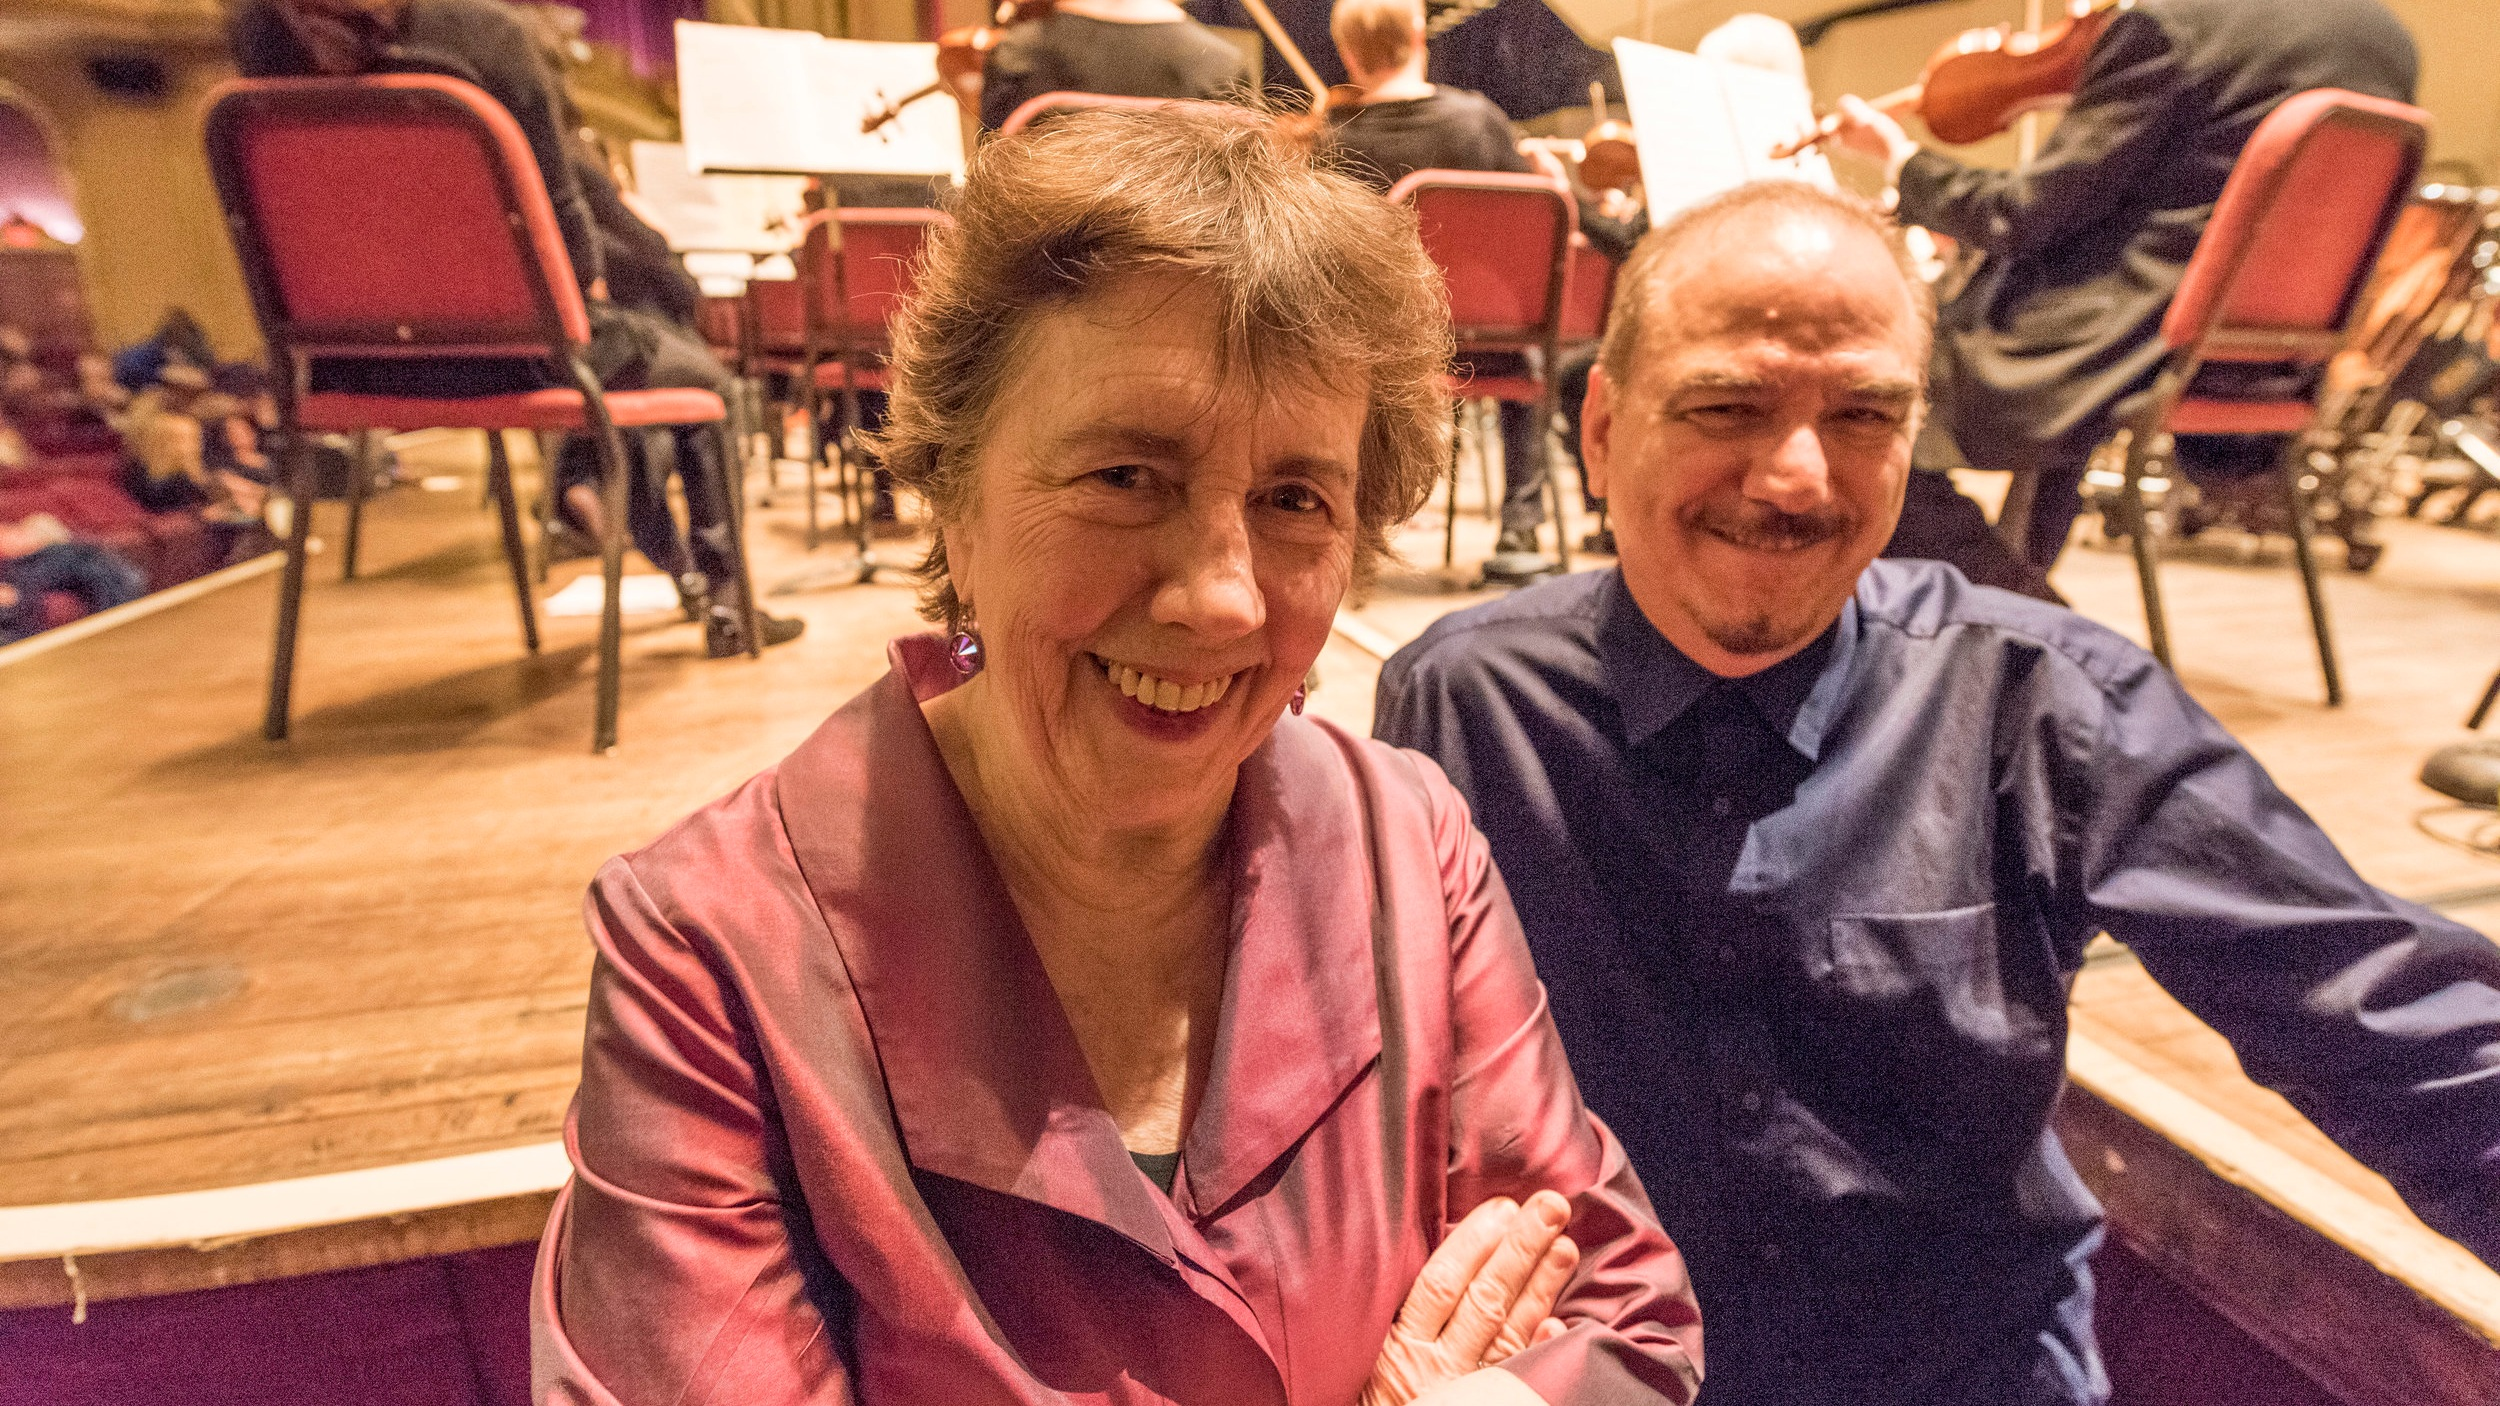 GRAMMY Award-winning composer, Joan Tower is wildly regarded as one of the most important composers today. Tower returns to hear the Albany Symphony perform Duet's alongside Beethoven Eight.